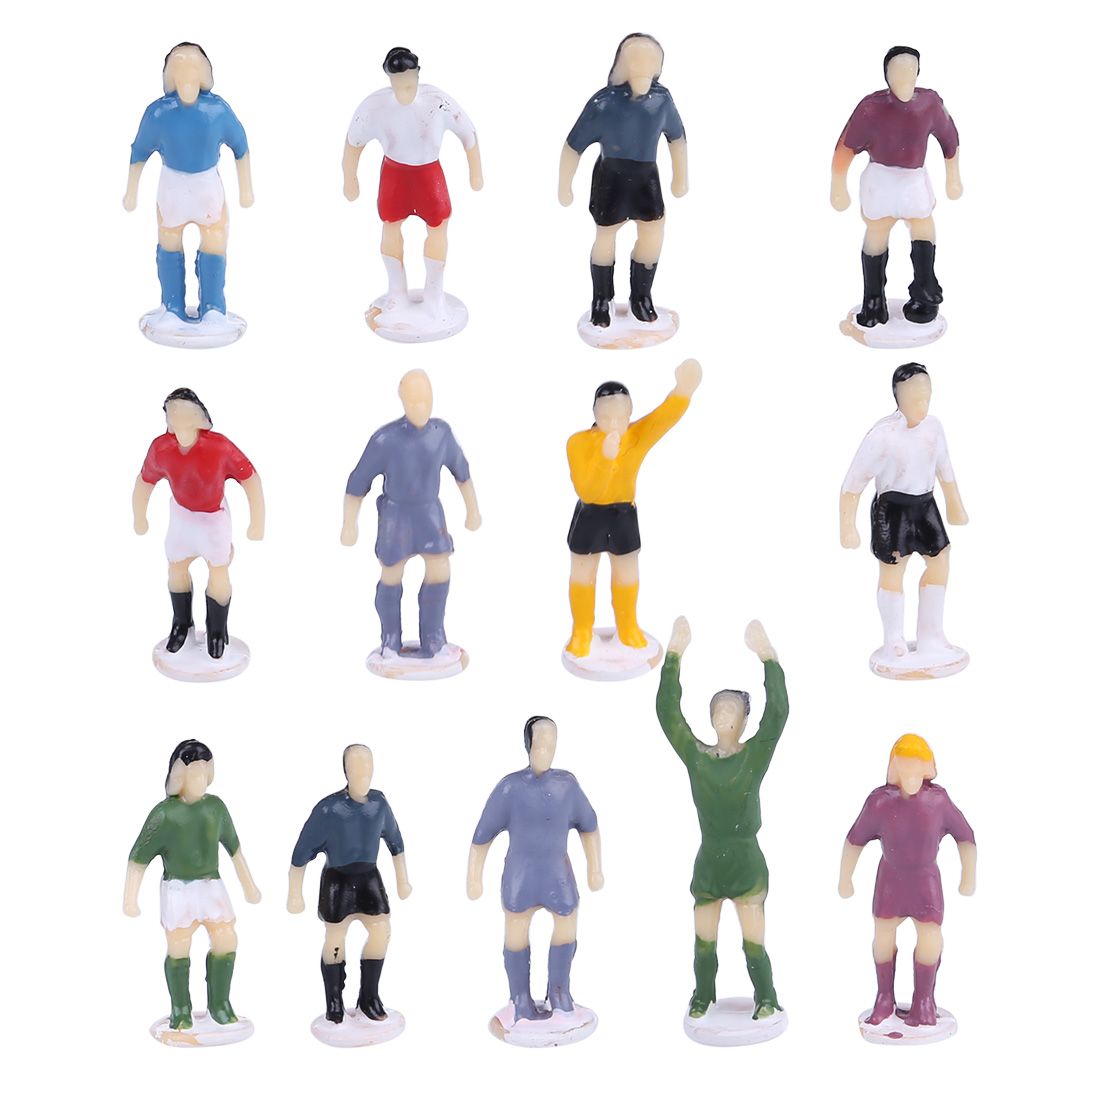 12Pcs/set 1:87 Mini Football Figures Sport Soccer Figures Sand Table Layout Model Building Kits - Types And Colors Are Random